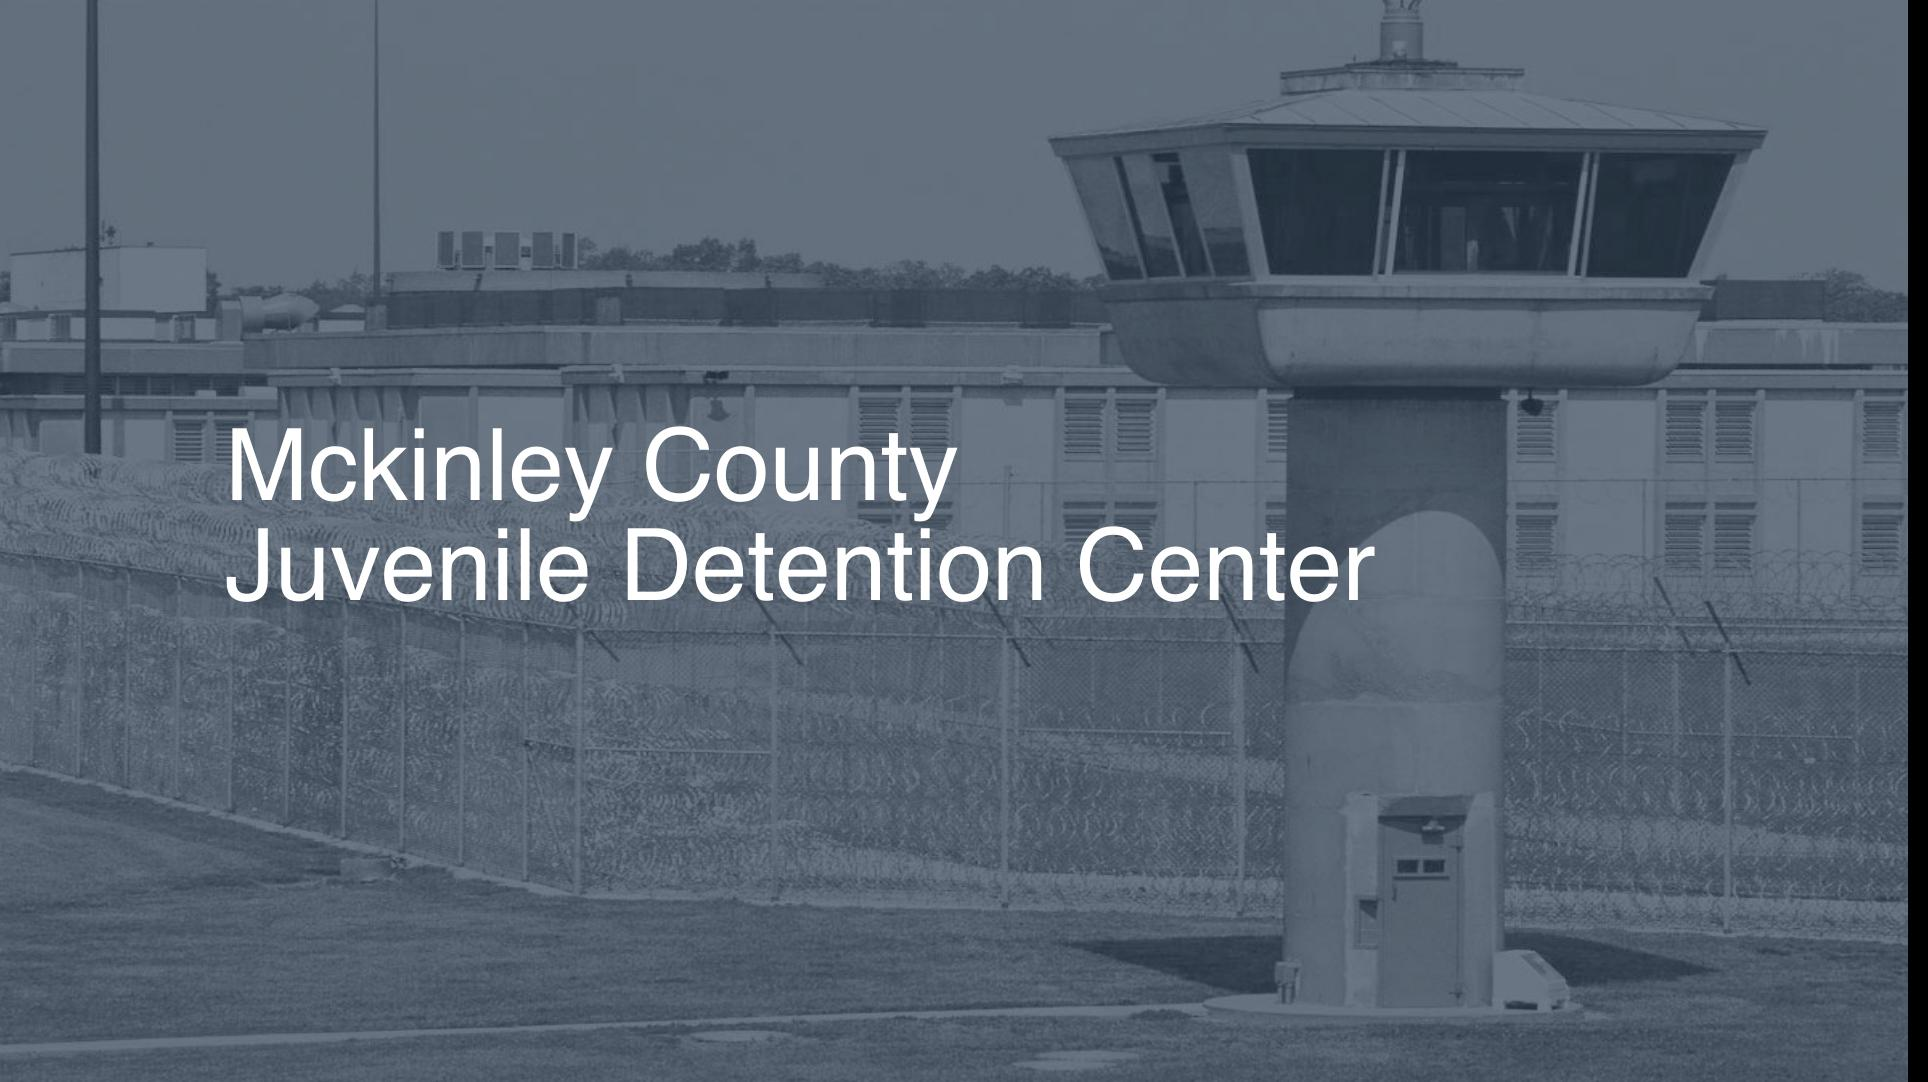 McKinley County Juvenile Detention Center correctional facility picture